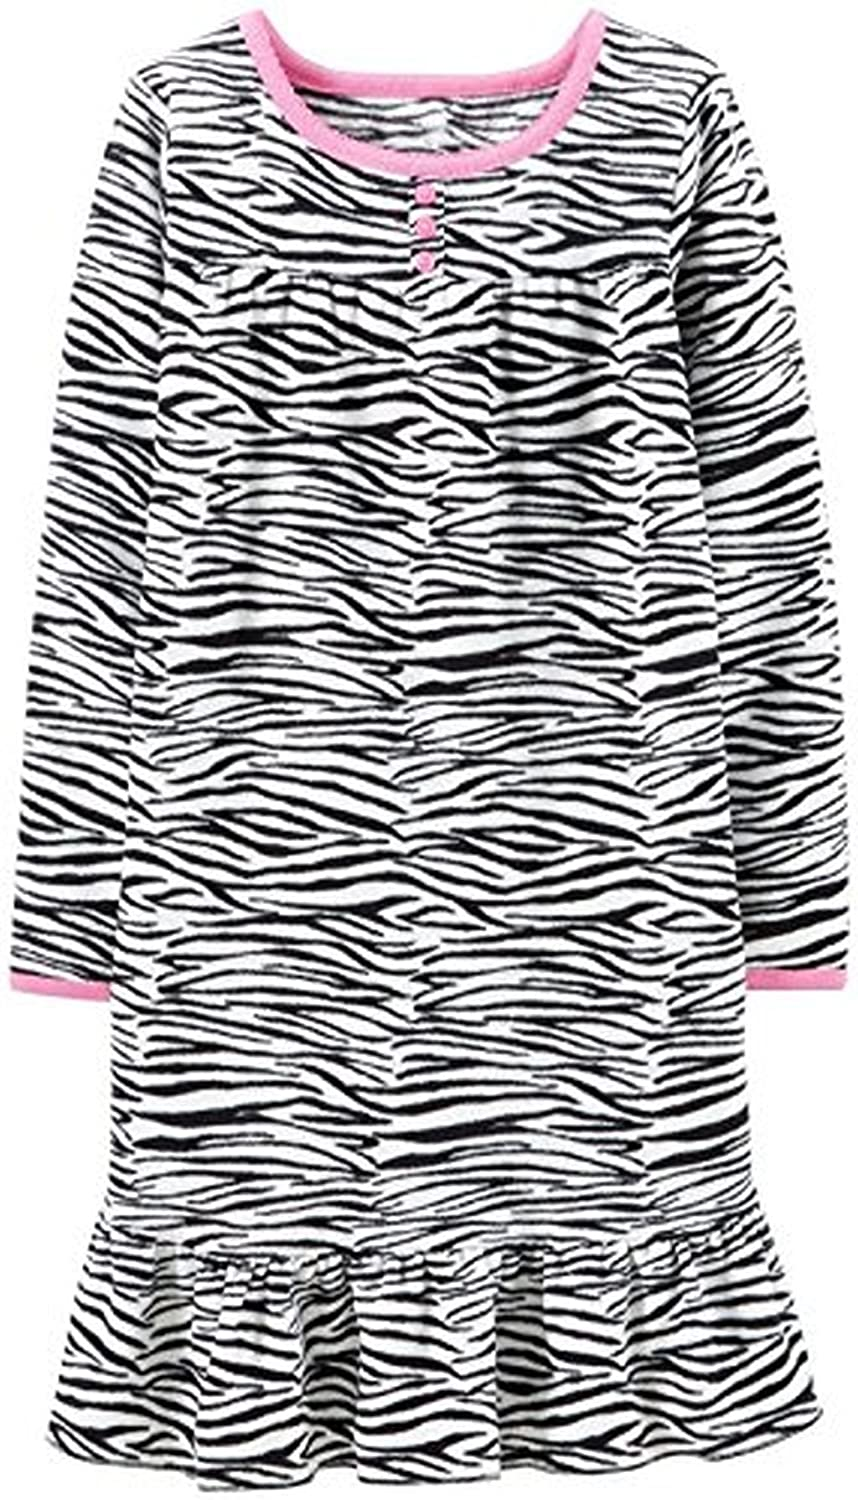 ec051437d Amazon.com  Carter s Girl s Size 4 5 Fleece Zebra Print Nightgown ...